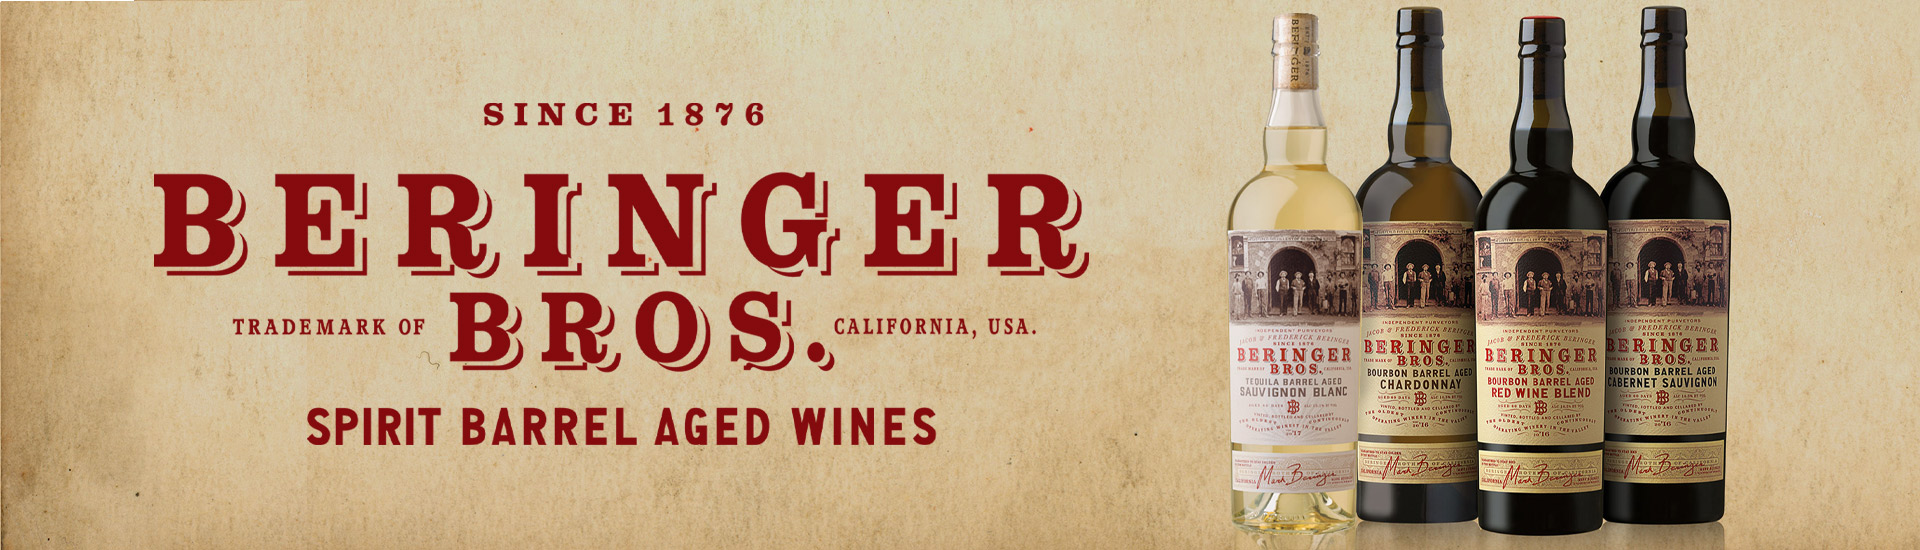 Beringer Bros. Wines